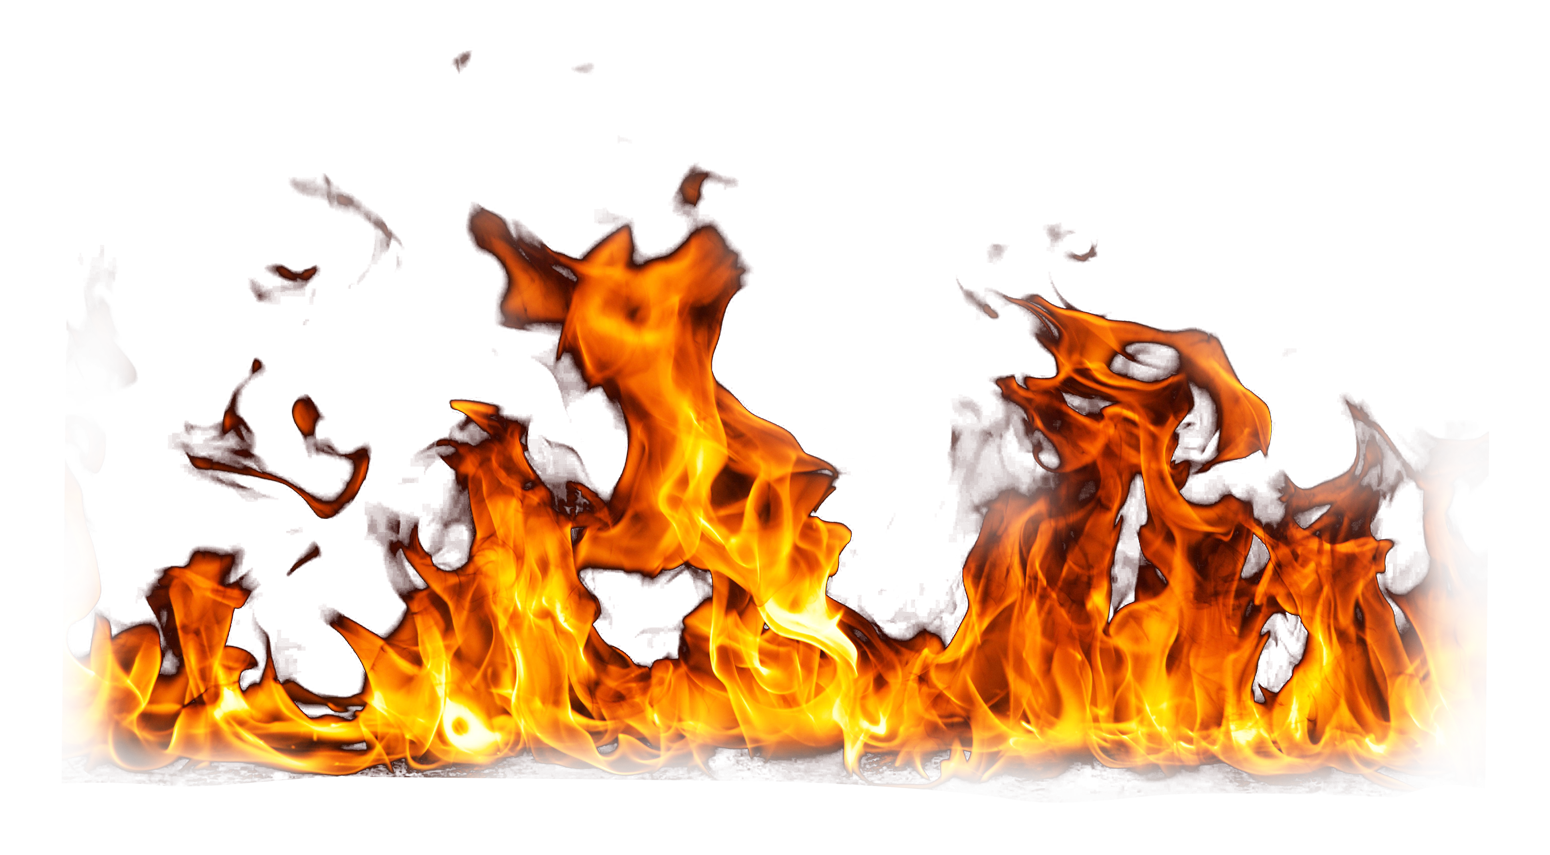 Fire Png Image Download Clipart 6800